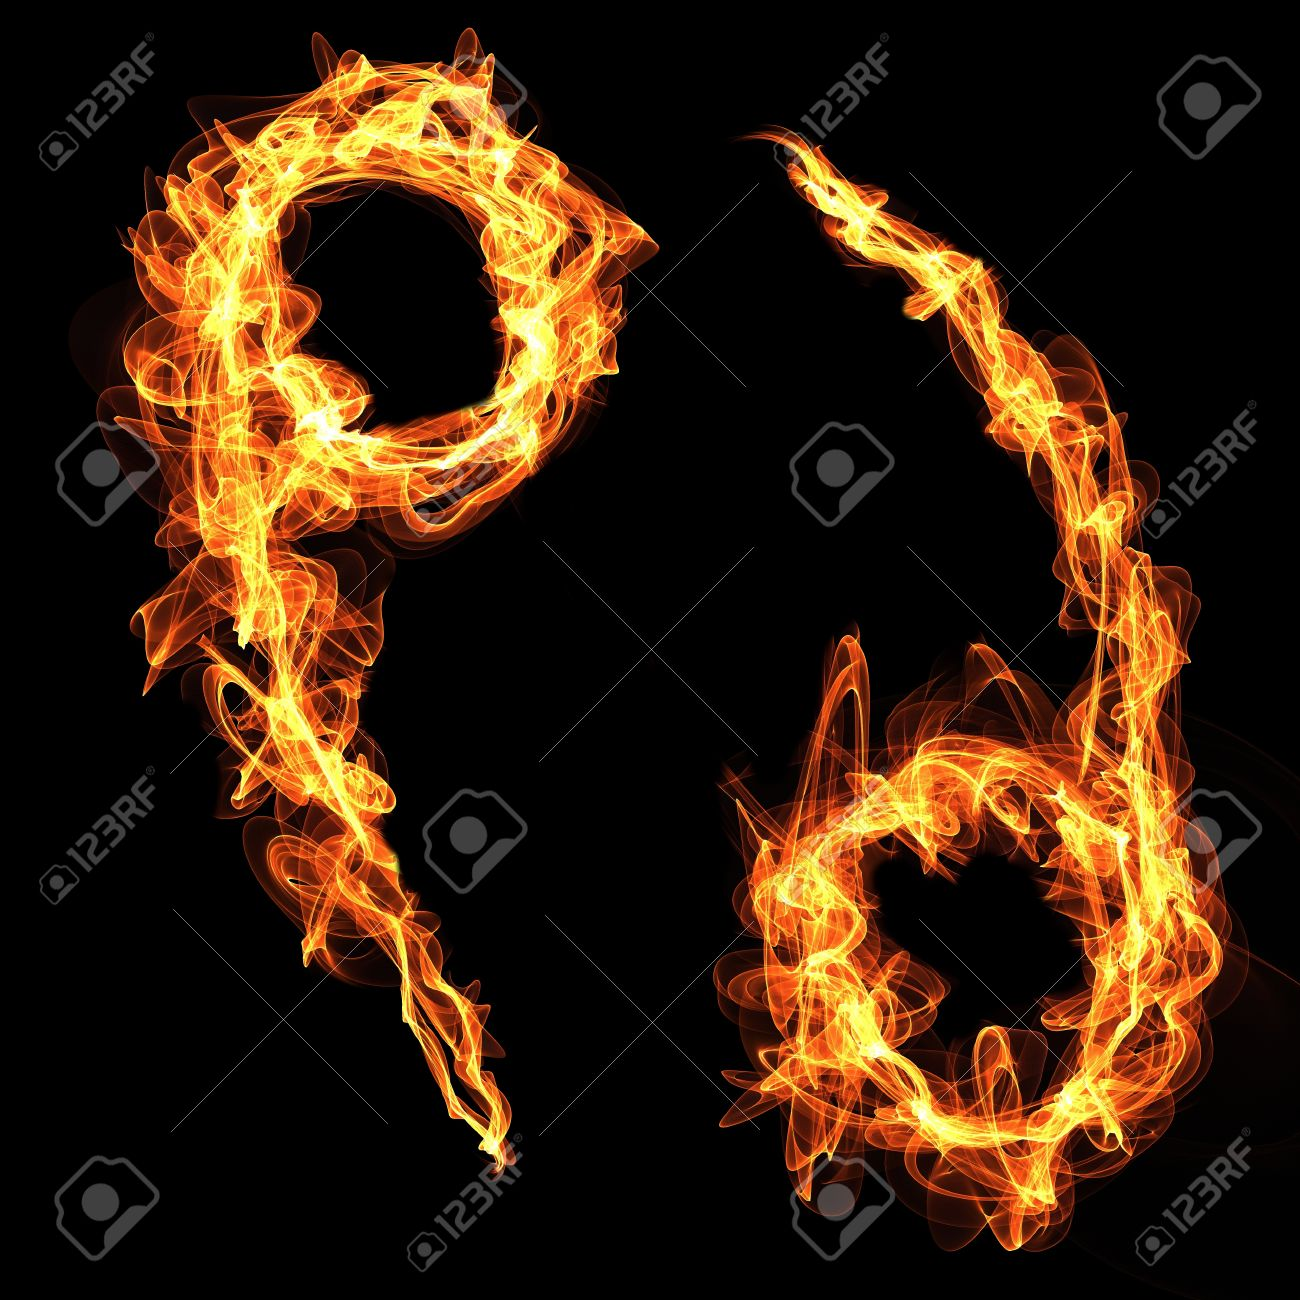 Fire zodiac sign cancer royalty free cliparts vectors and stock fire zodiac sign cancer stock vector 18891588 biocorpaavc Gallery